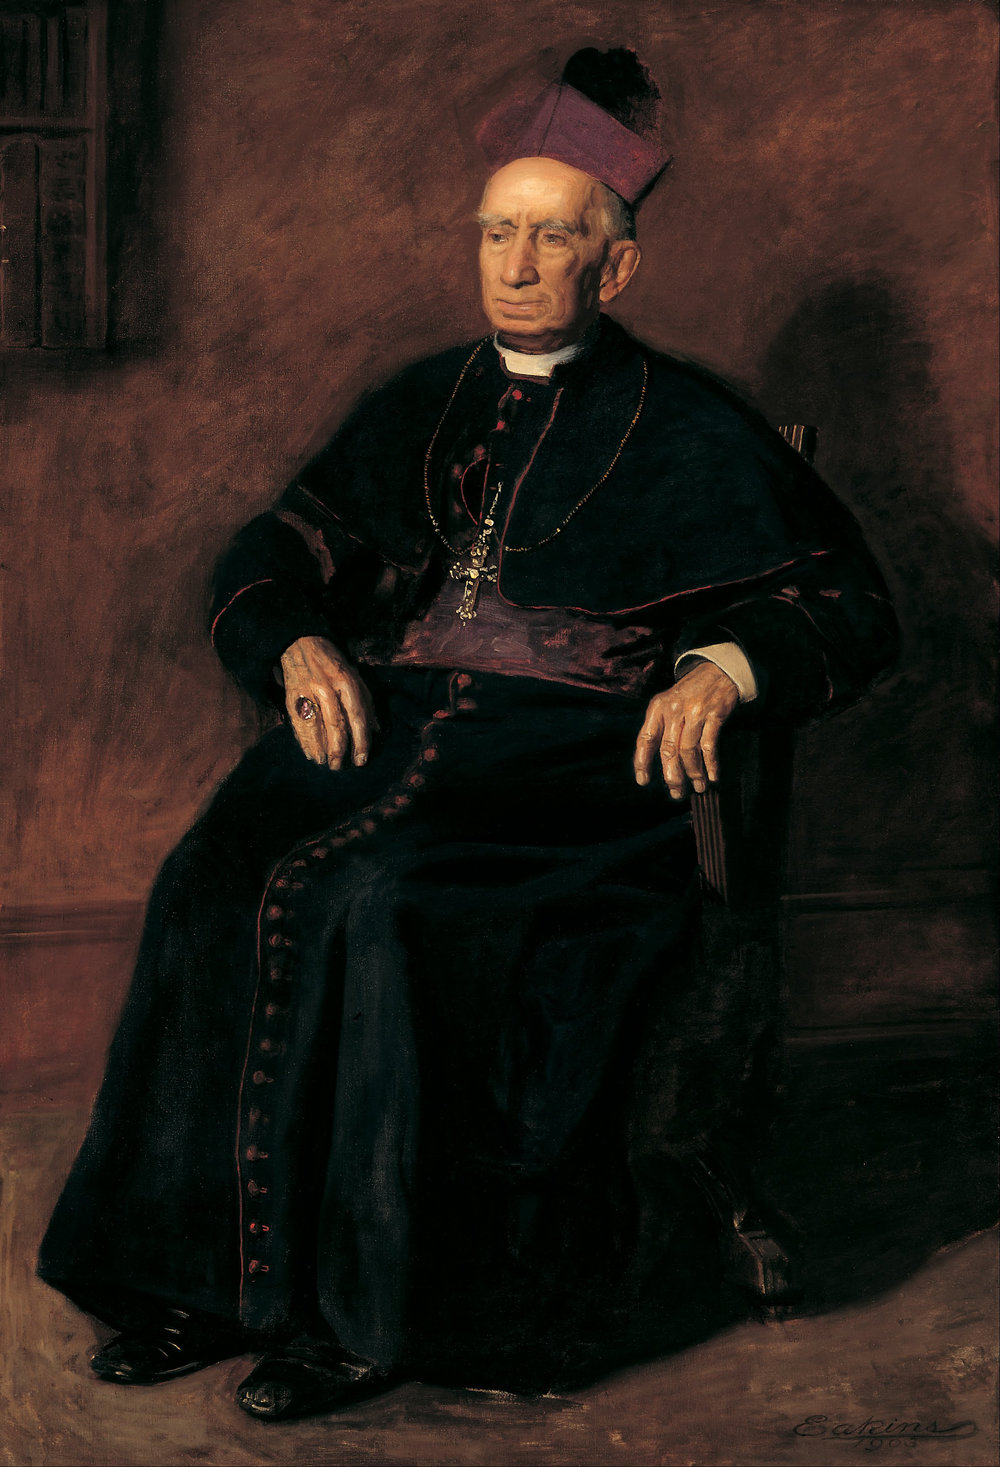 Archbishop William Henry Elder, portrait by Thomas Eakins.